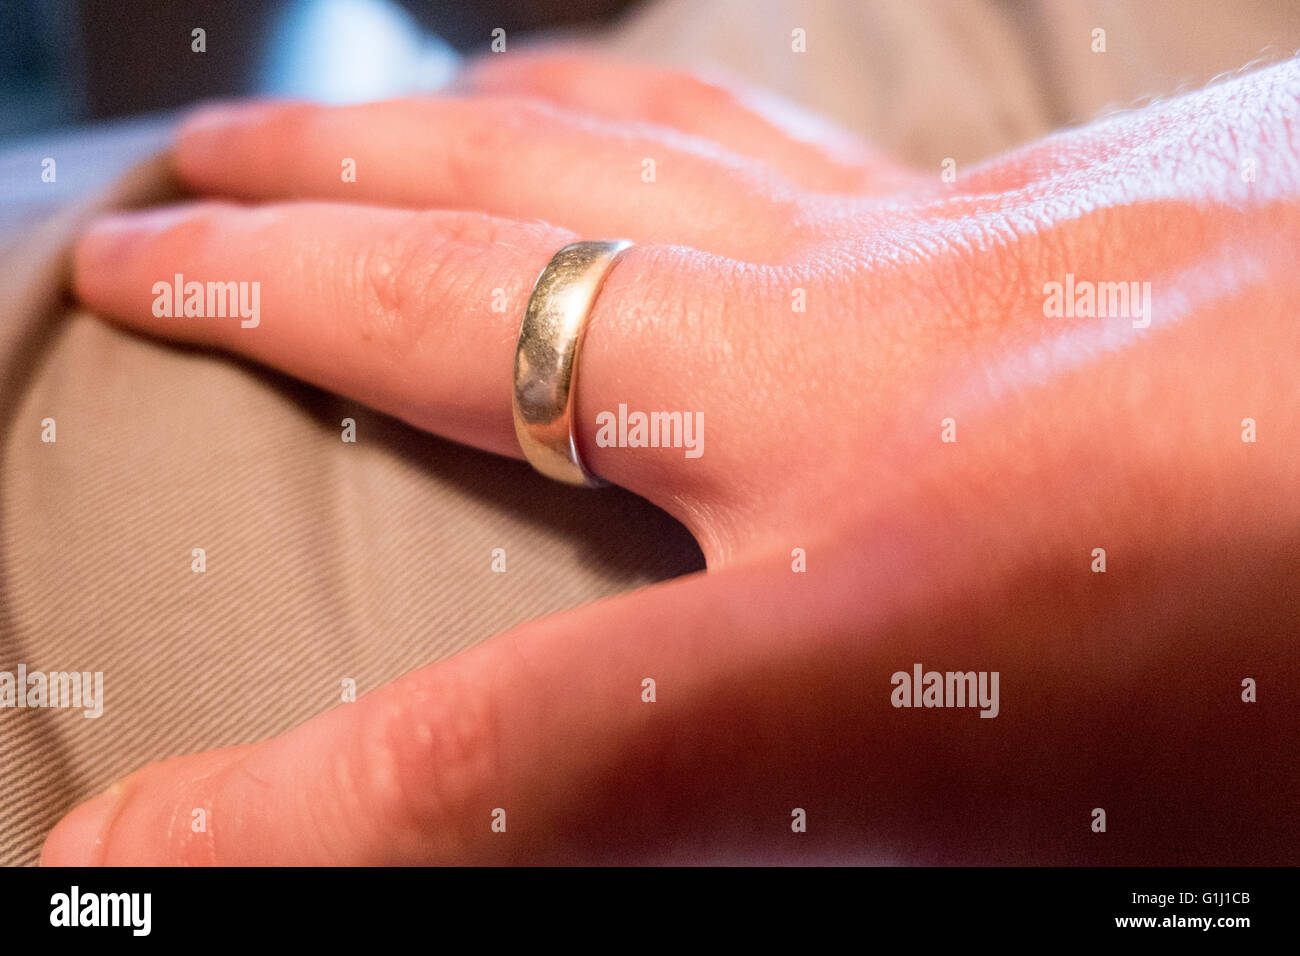 Wedding ring on a man's hand - Stock Image